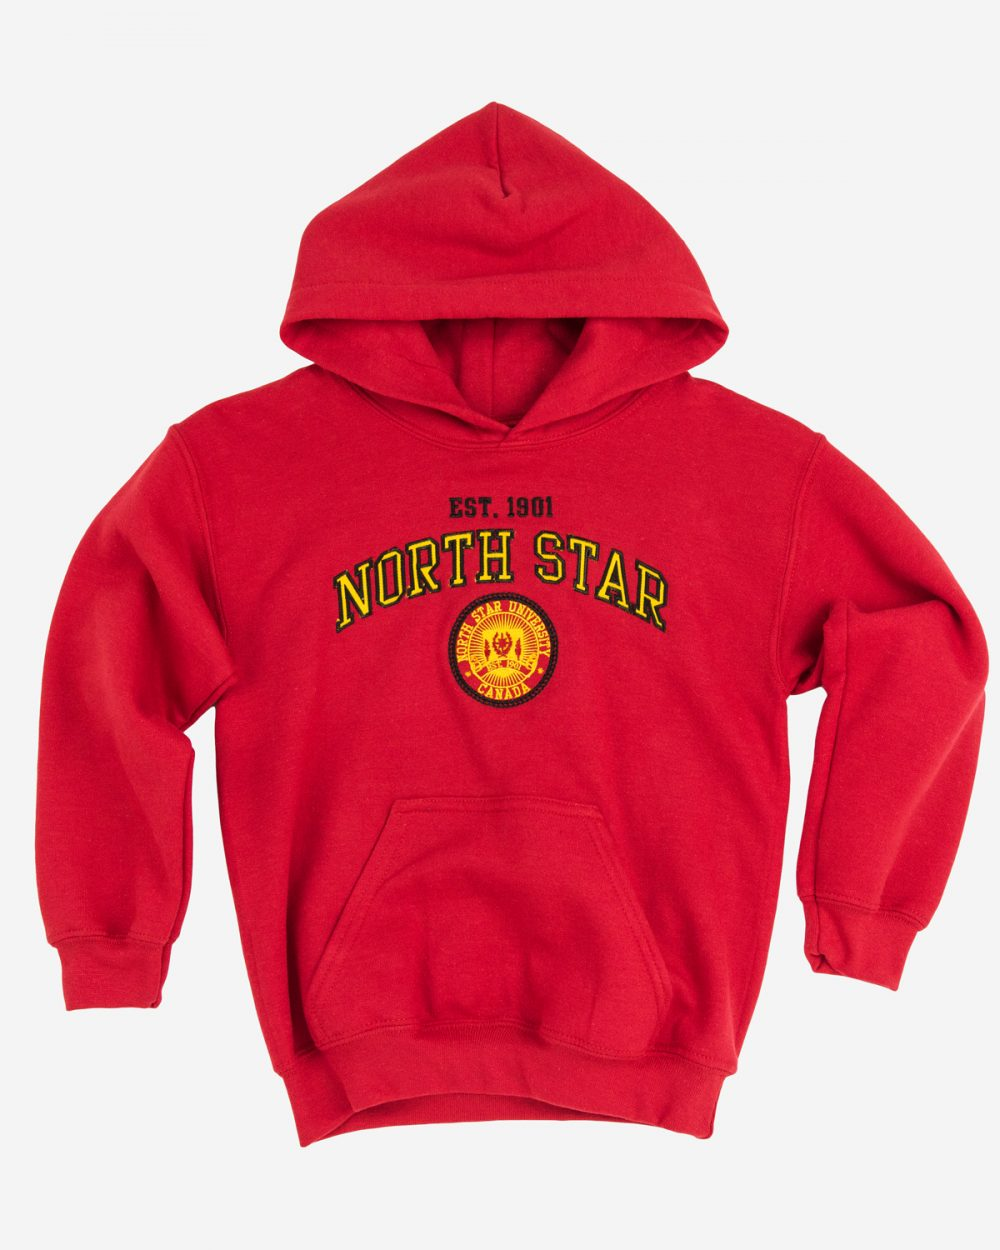 Youth Hood 120 in red.